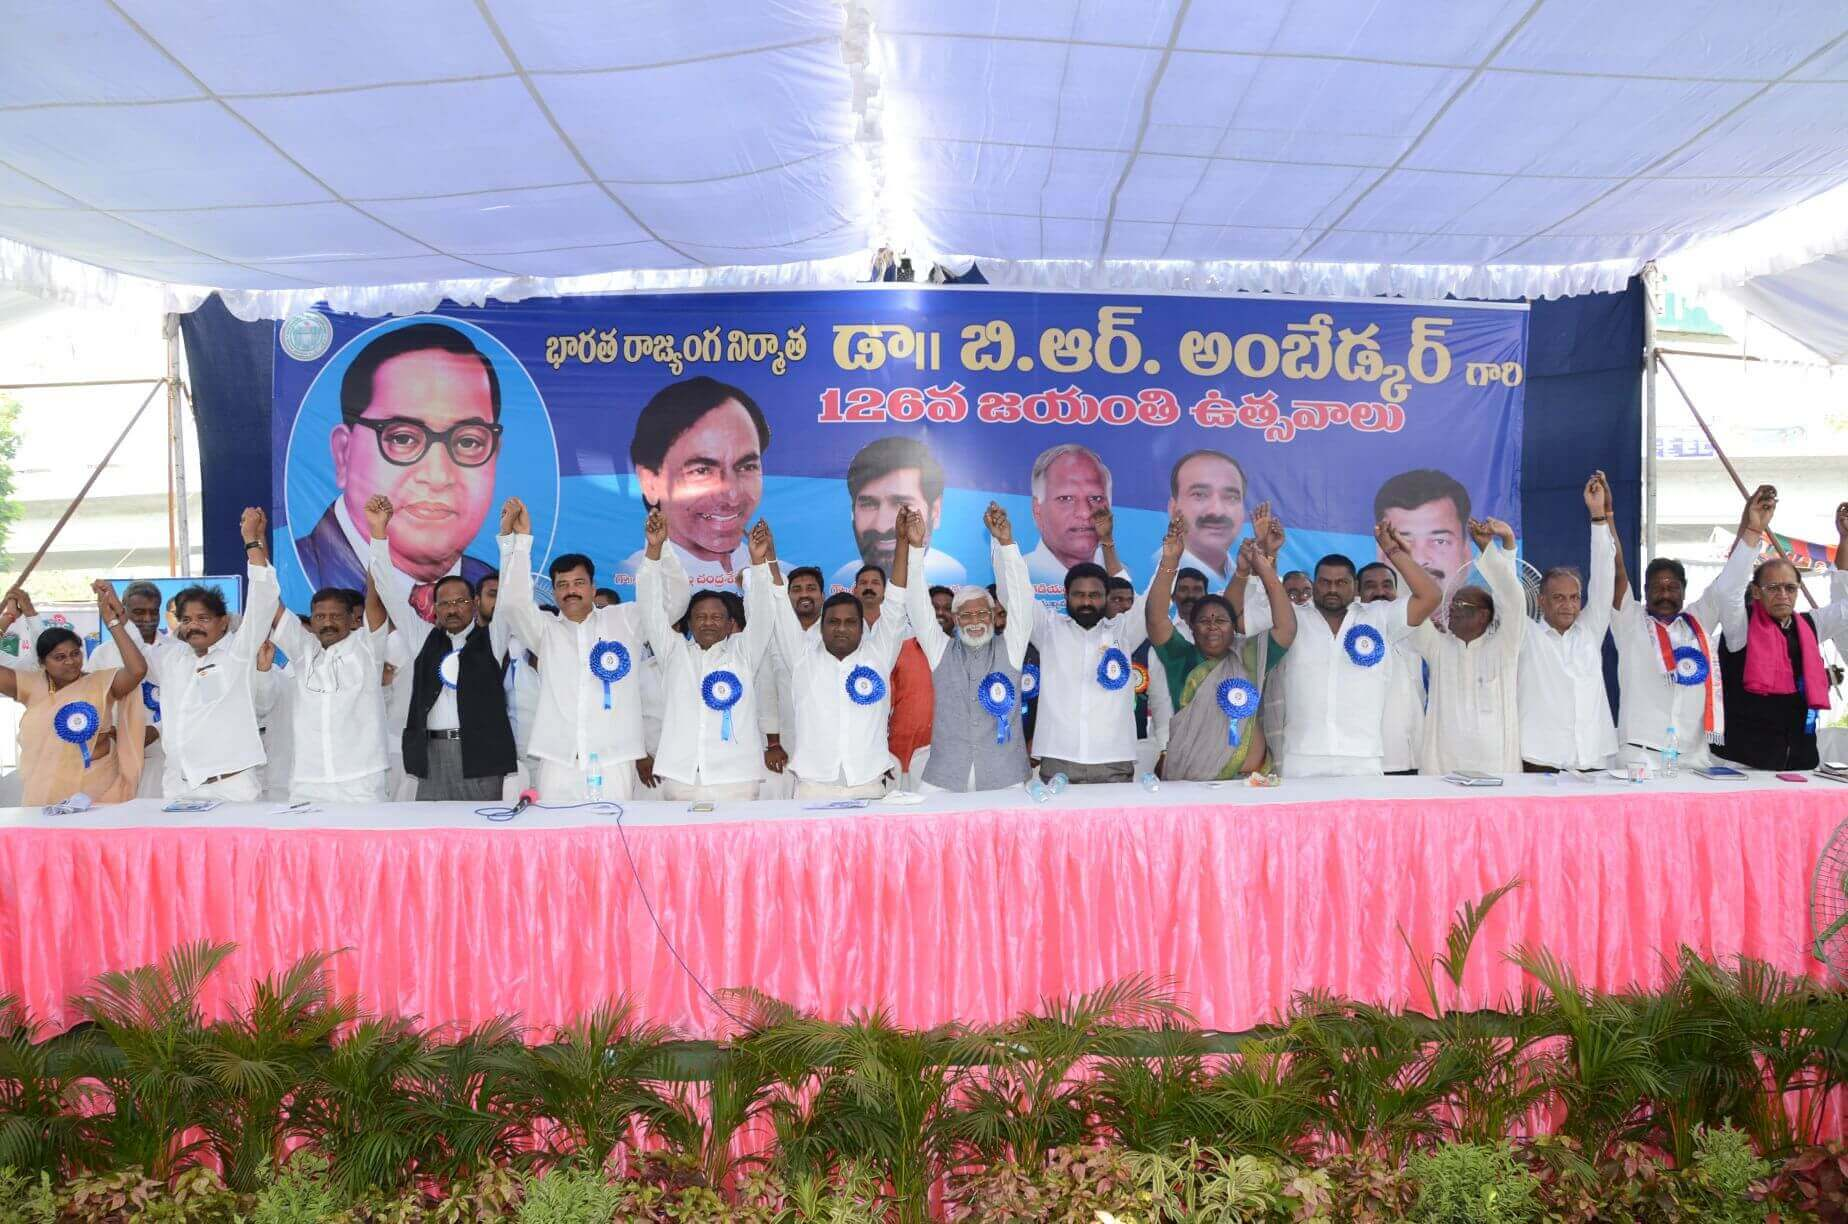 Dr. B.R. Ambedkar birthday celebrations in Telangana Hyderabad on 14-04-2017